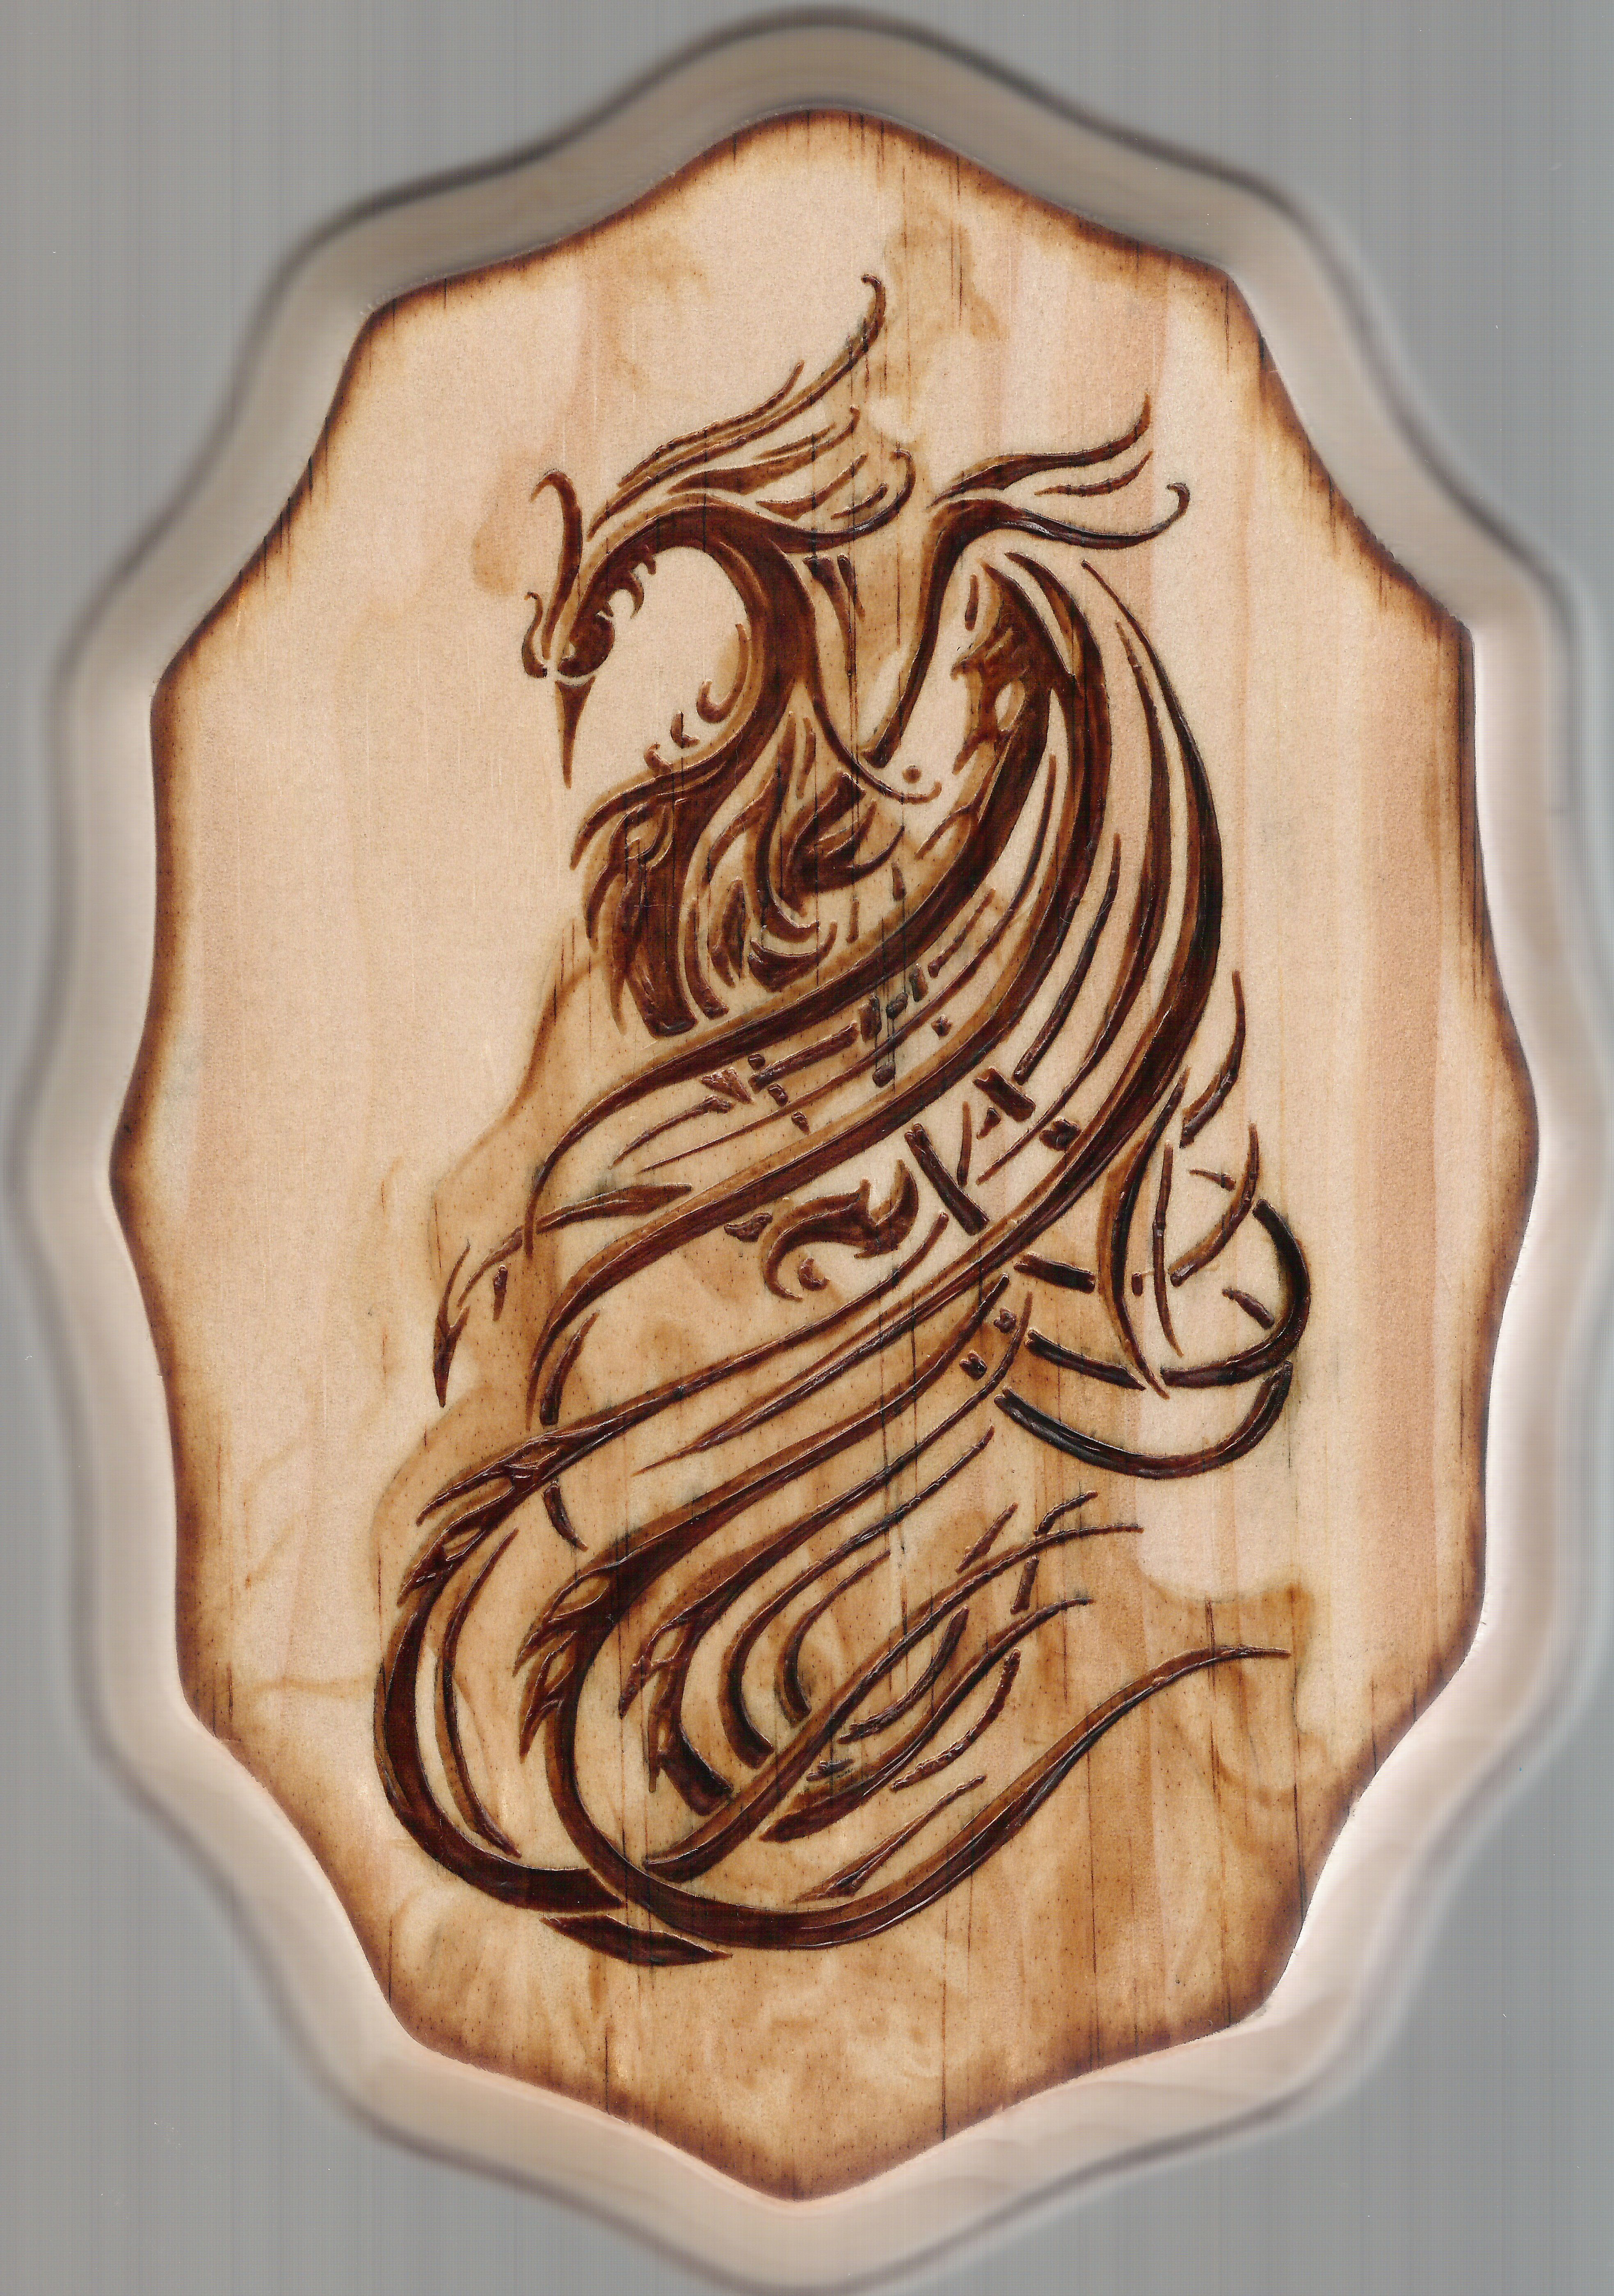 Pin by colleen jess on wood burned art pinterest for Wood burning design ideas